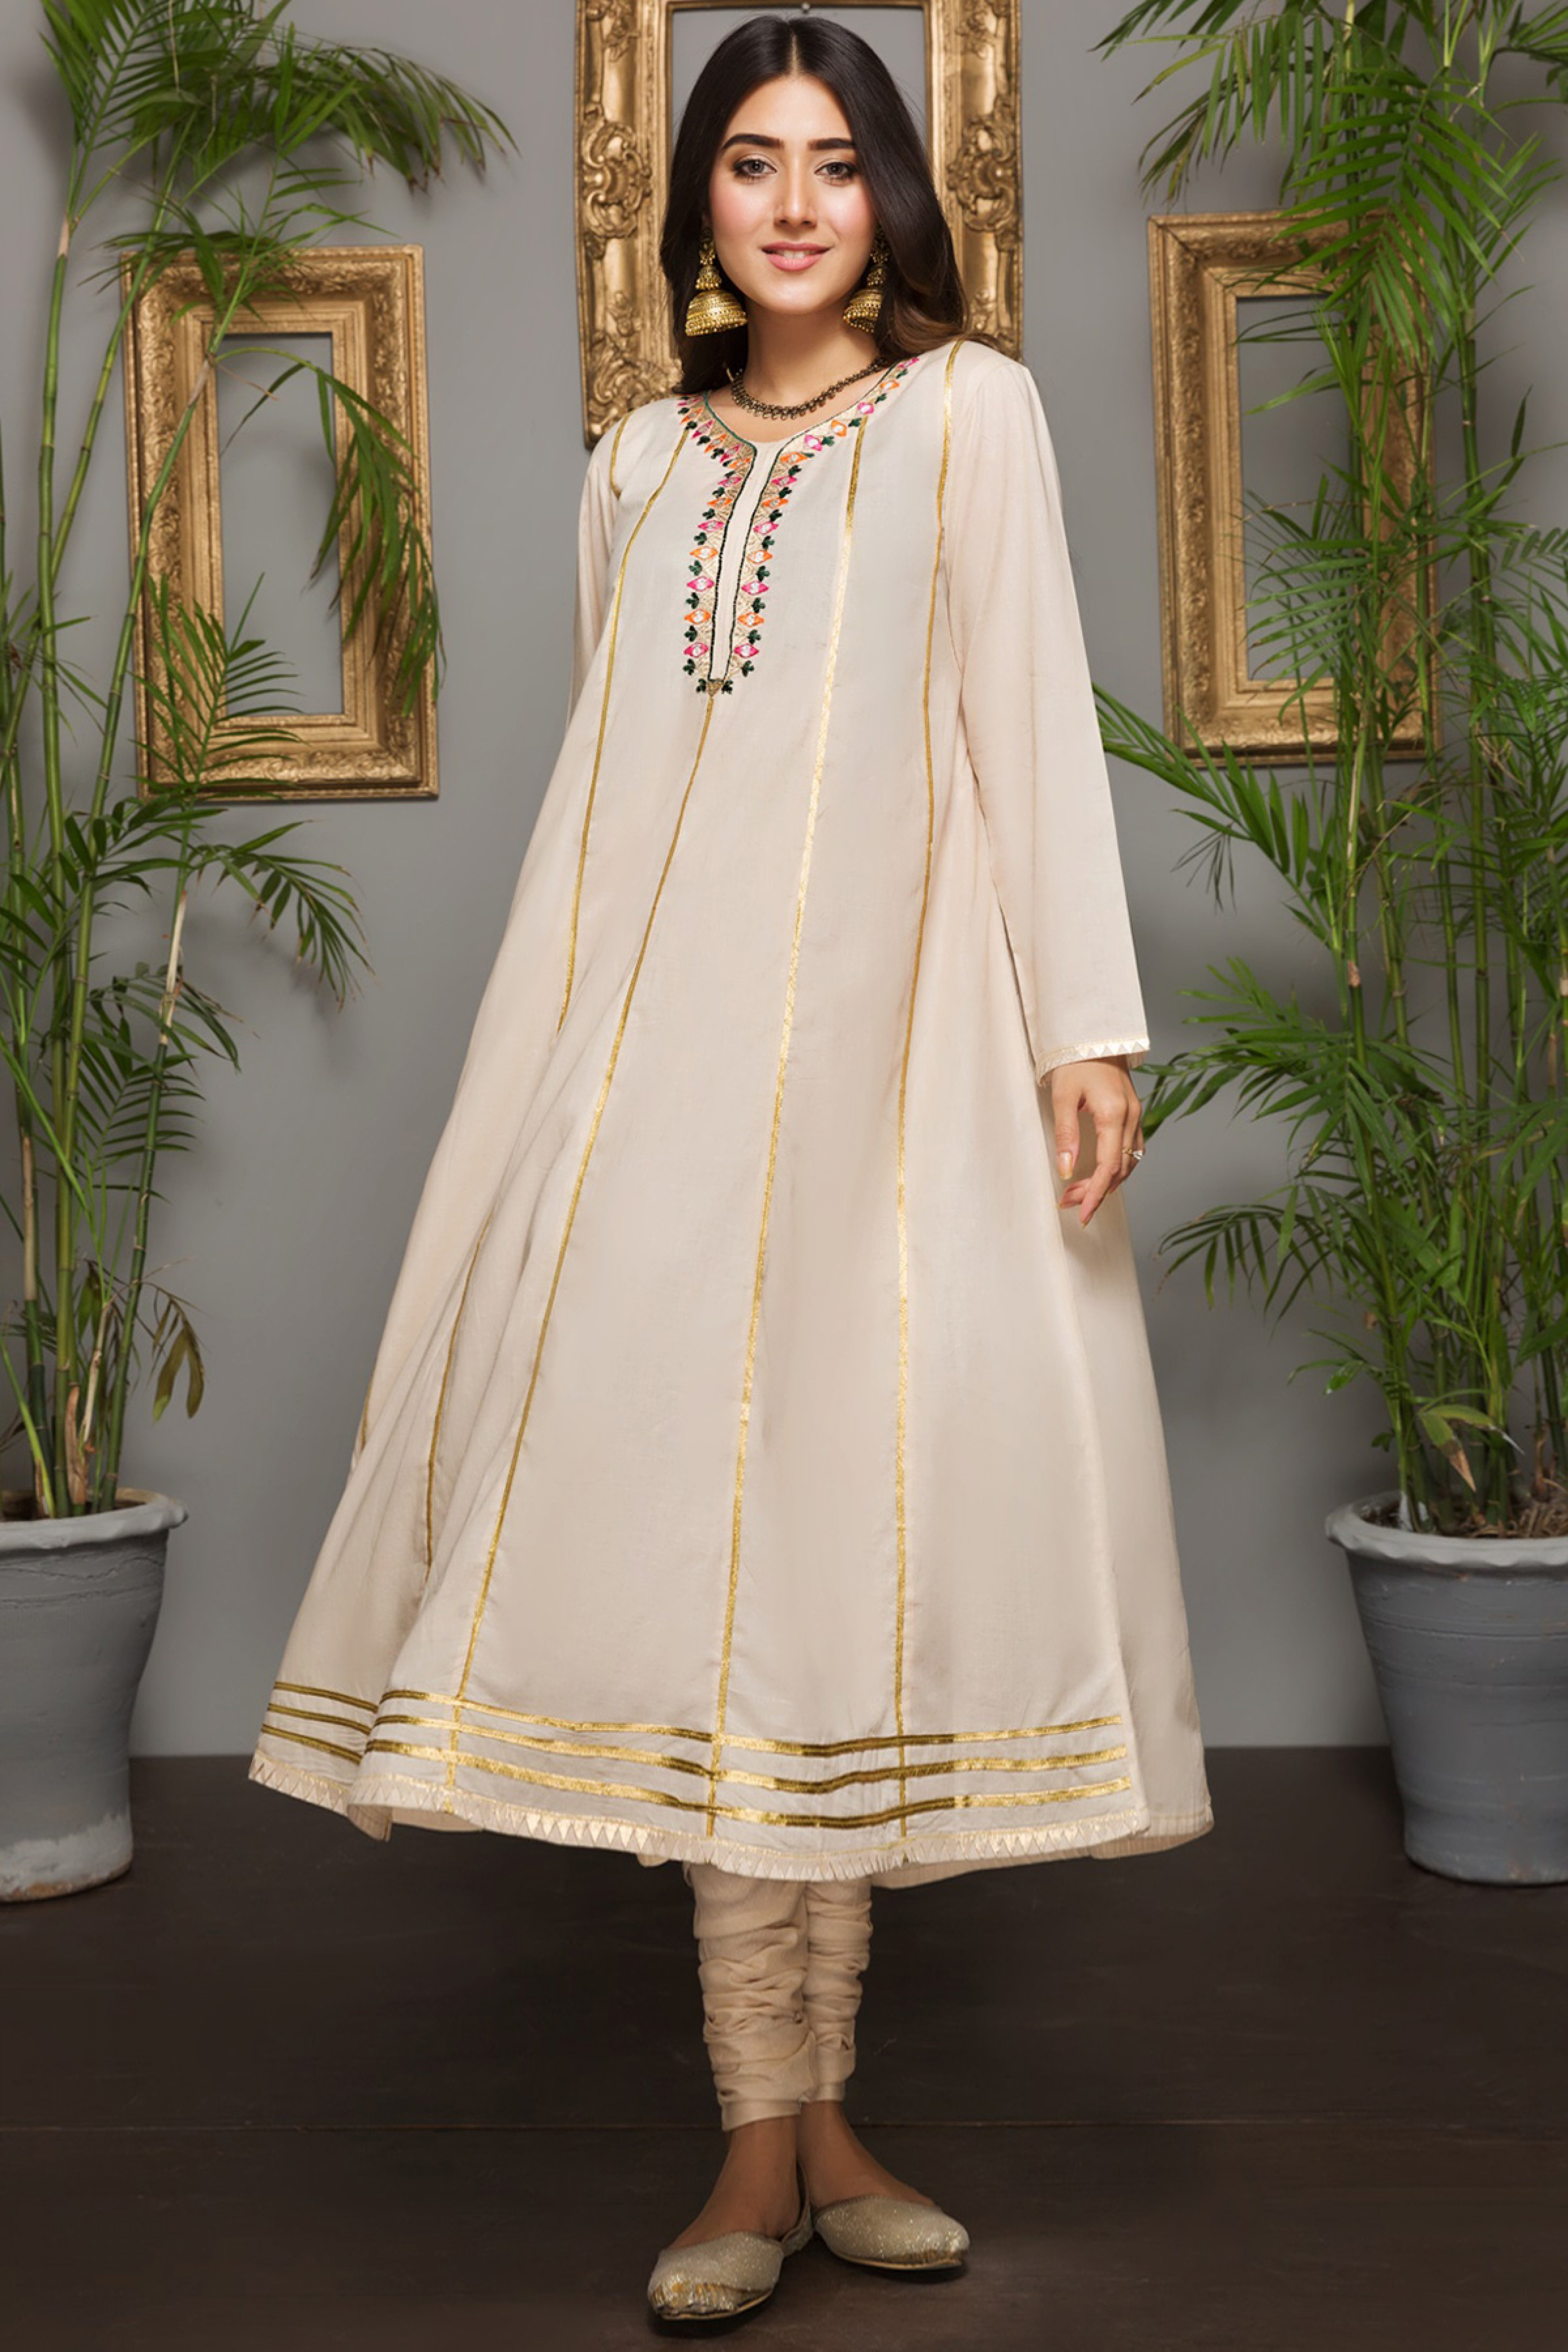 TUBE ROSE (Embroidered Frock)